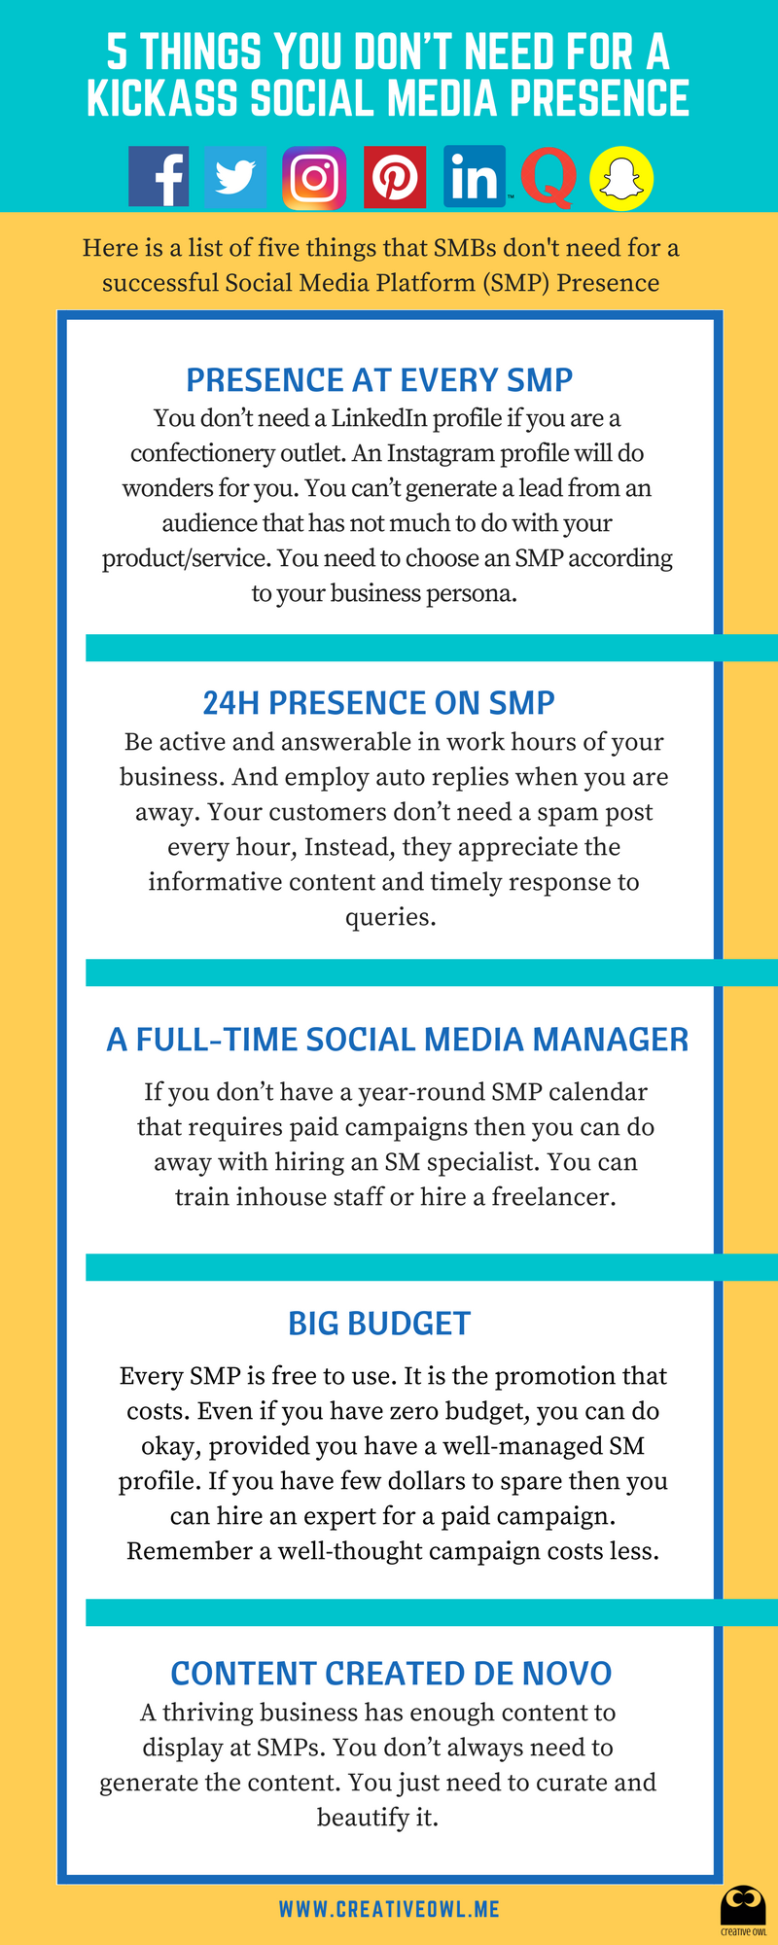 Social Media Management for Small and Medium Businesses